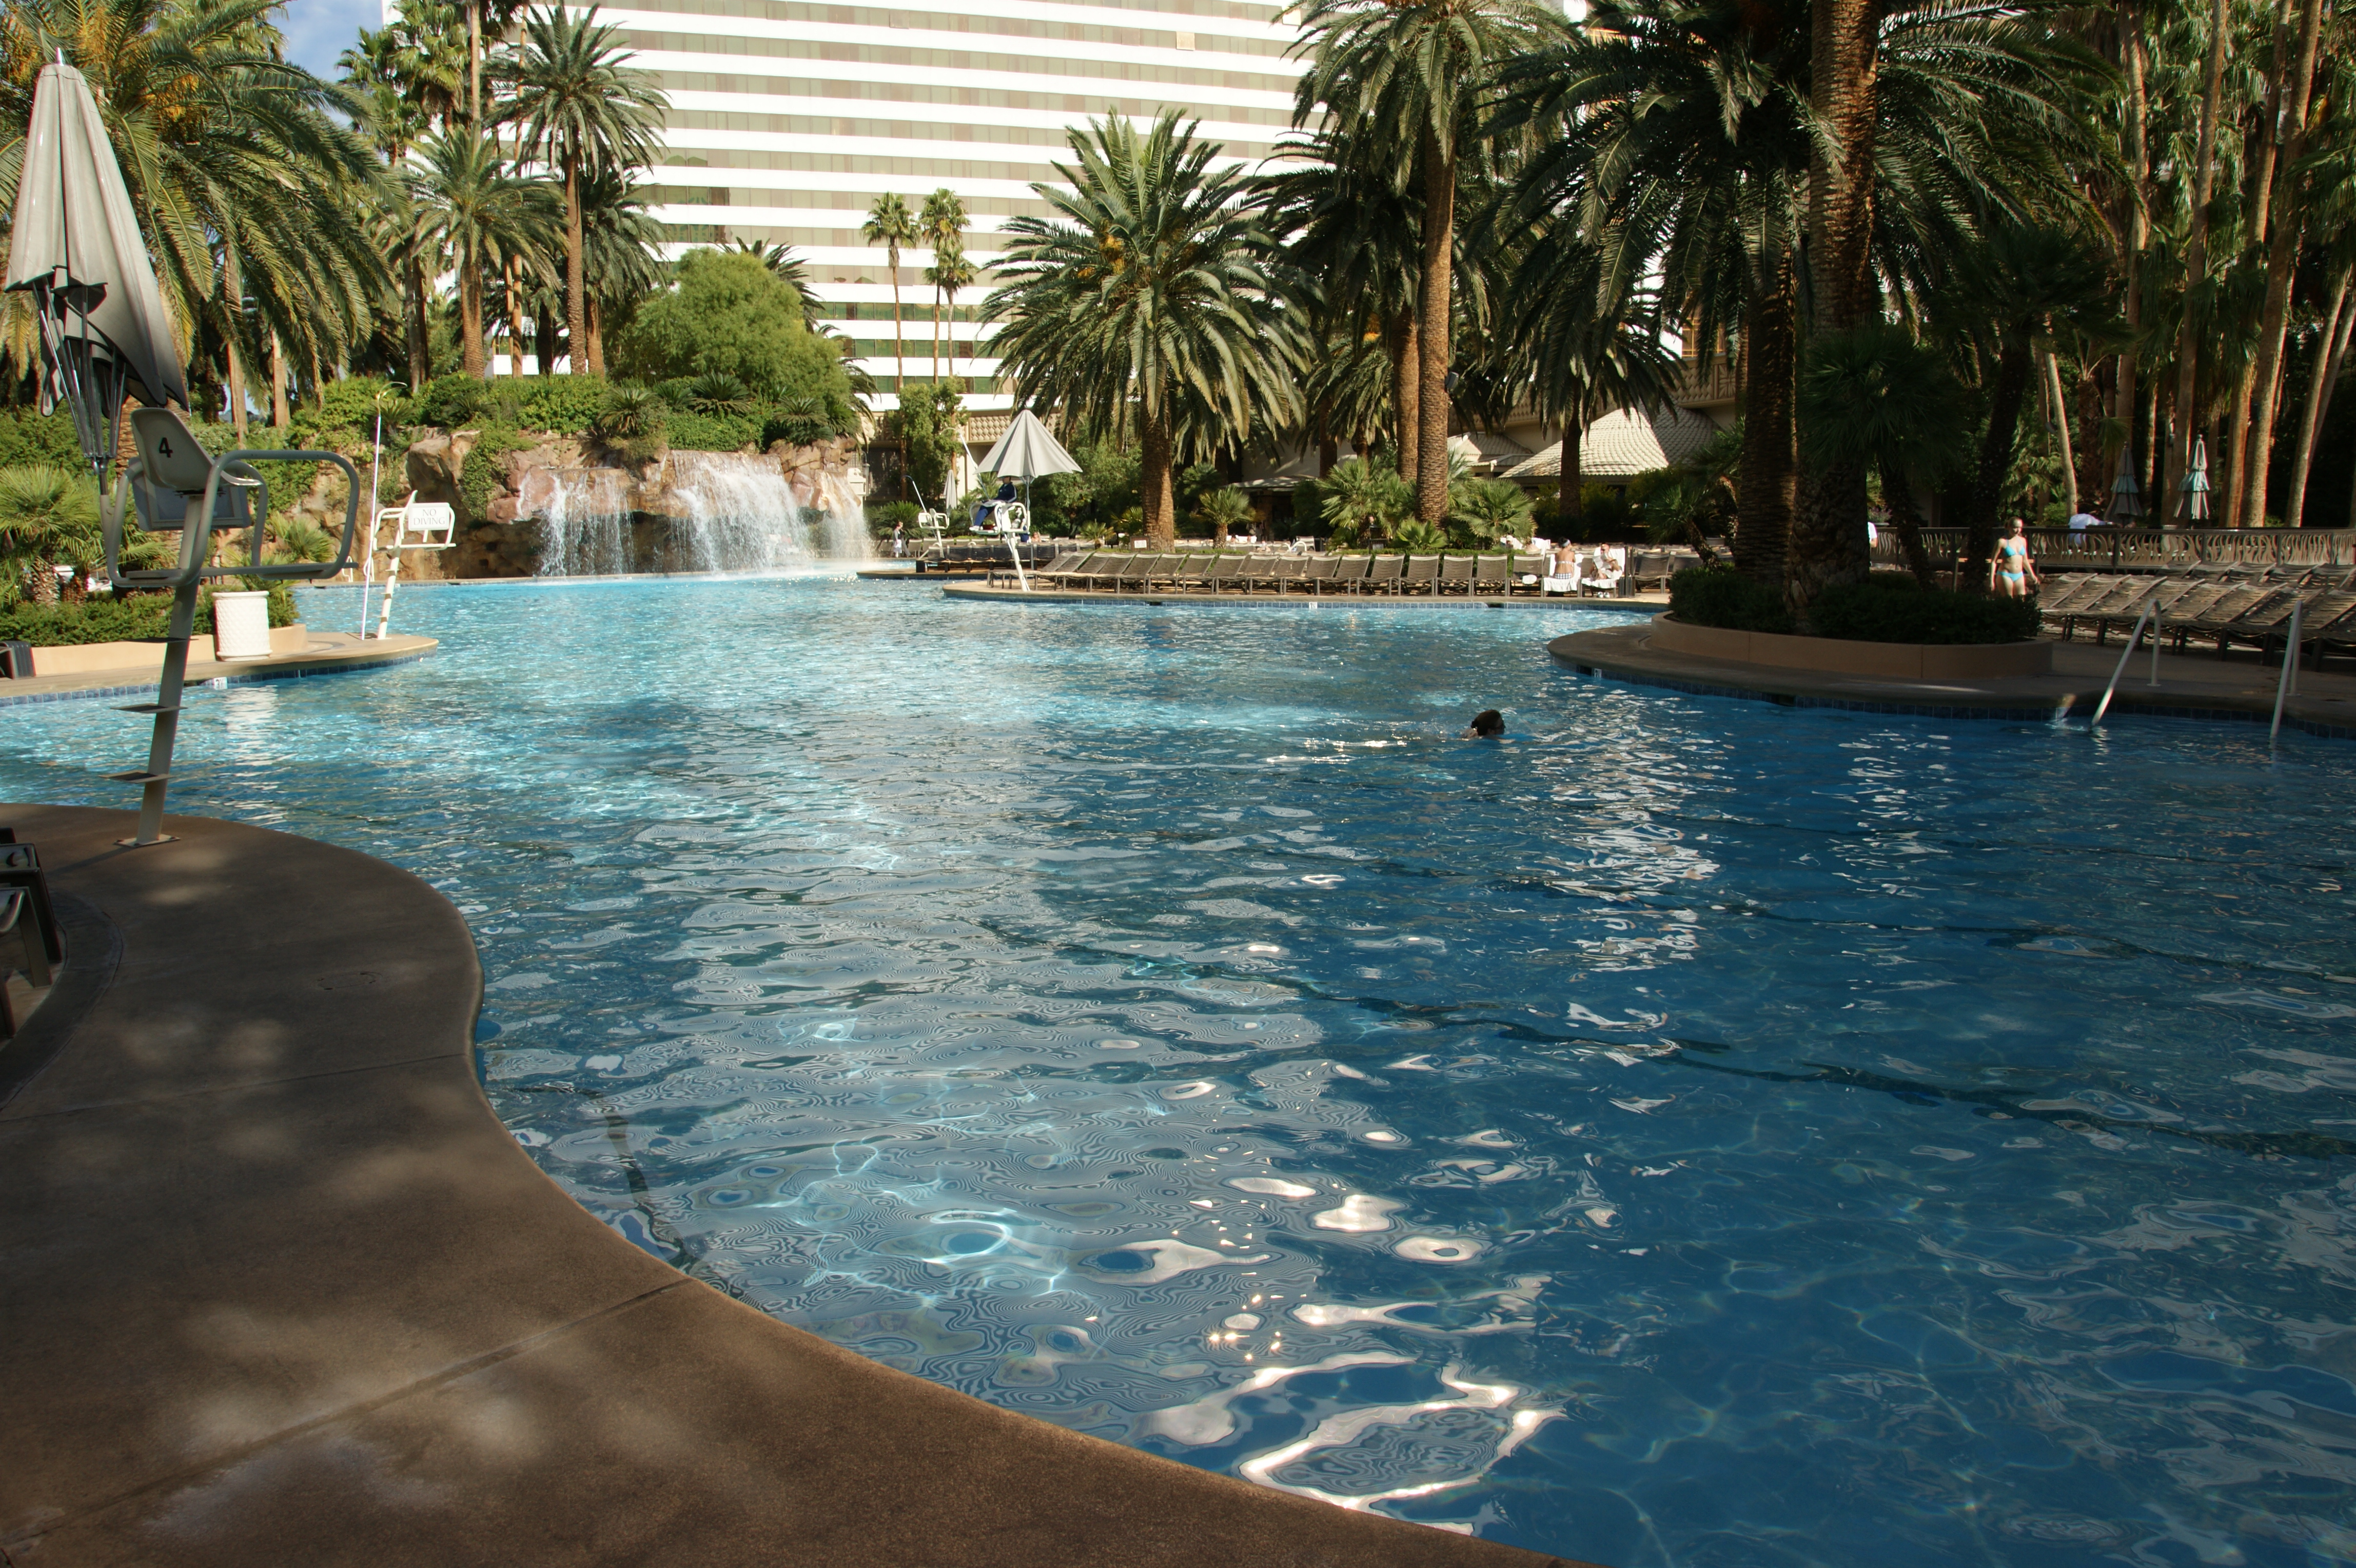 Mirage Hotel Pool Pictures